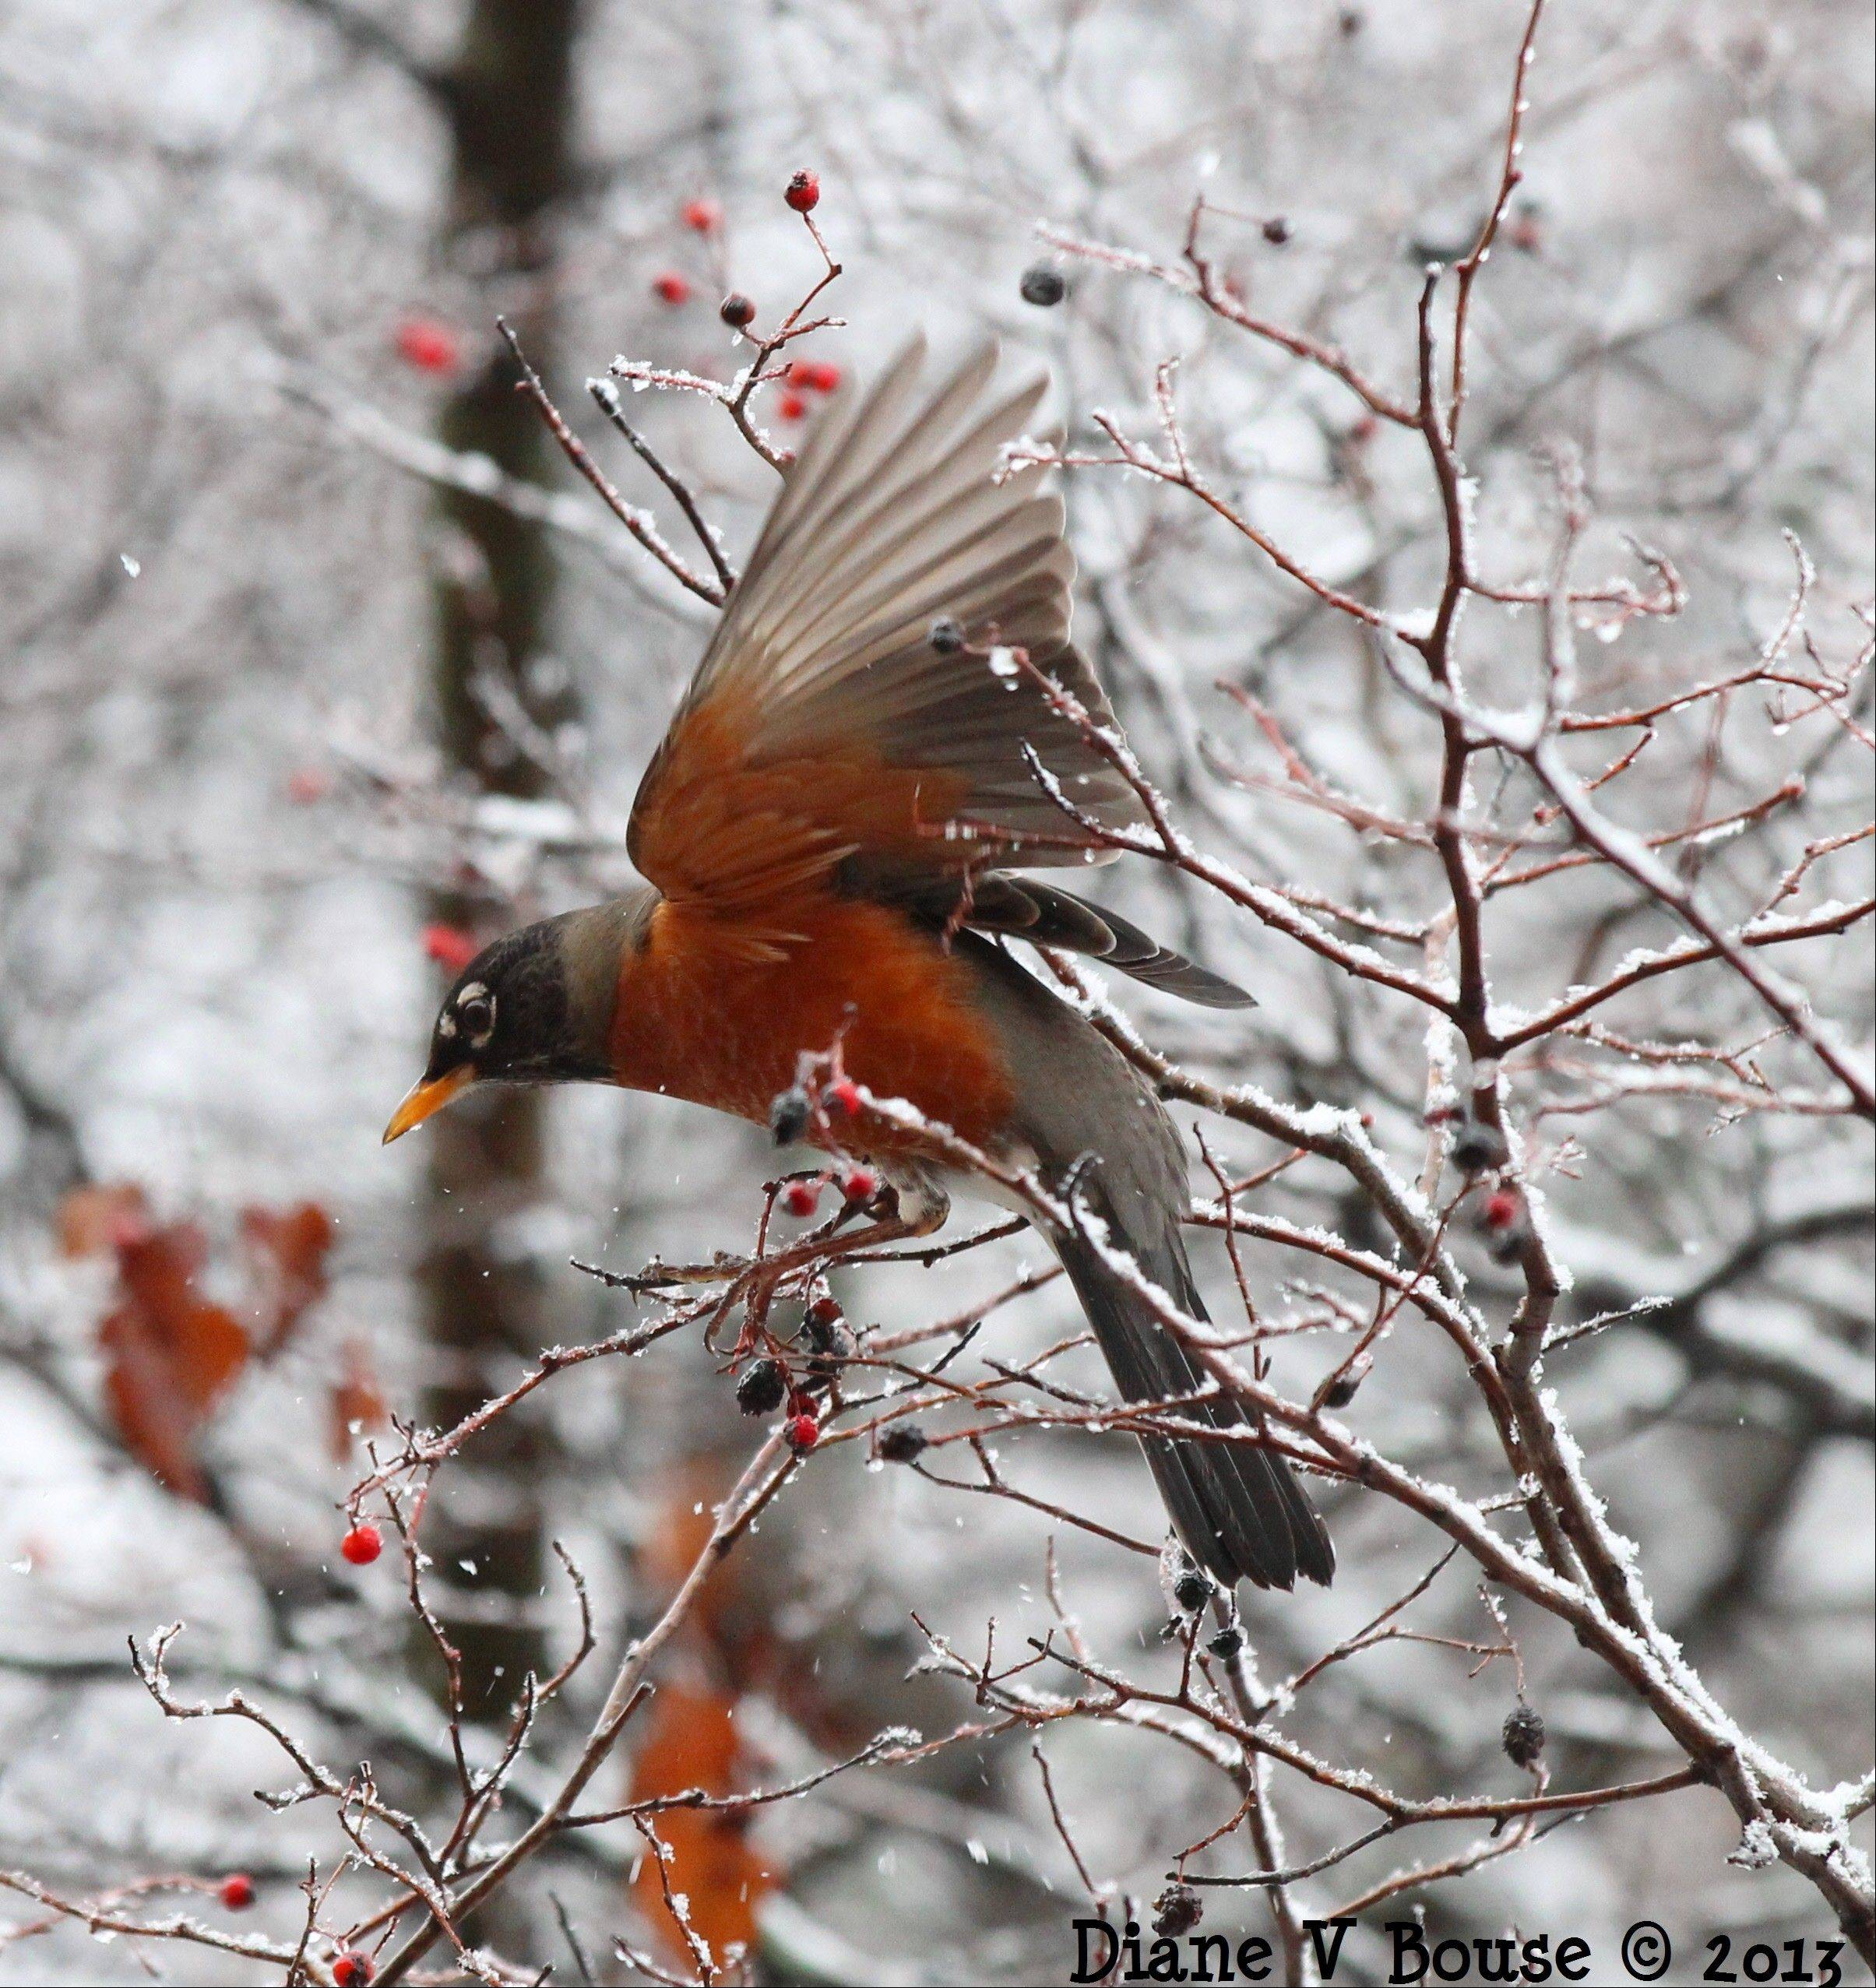 A robin eats some berries during the winter snowstorm.